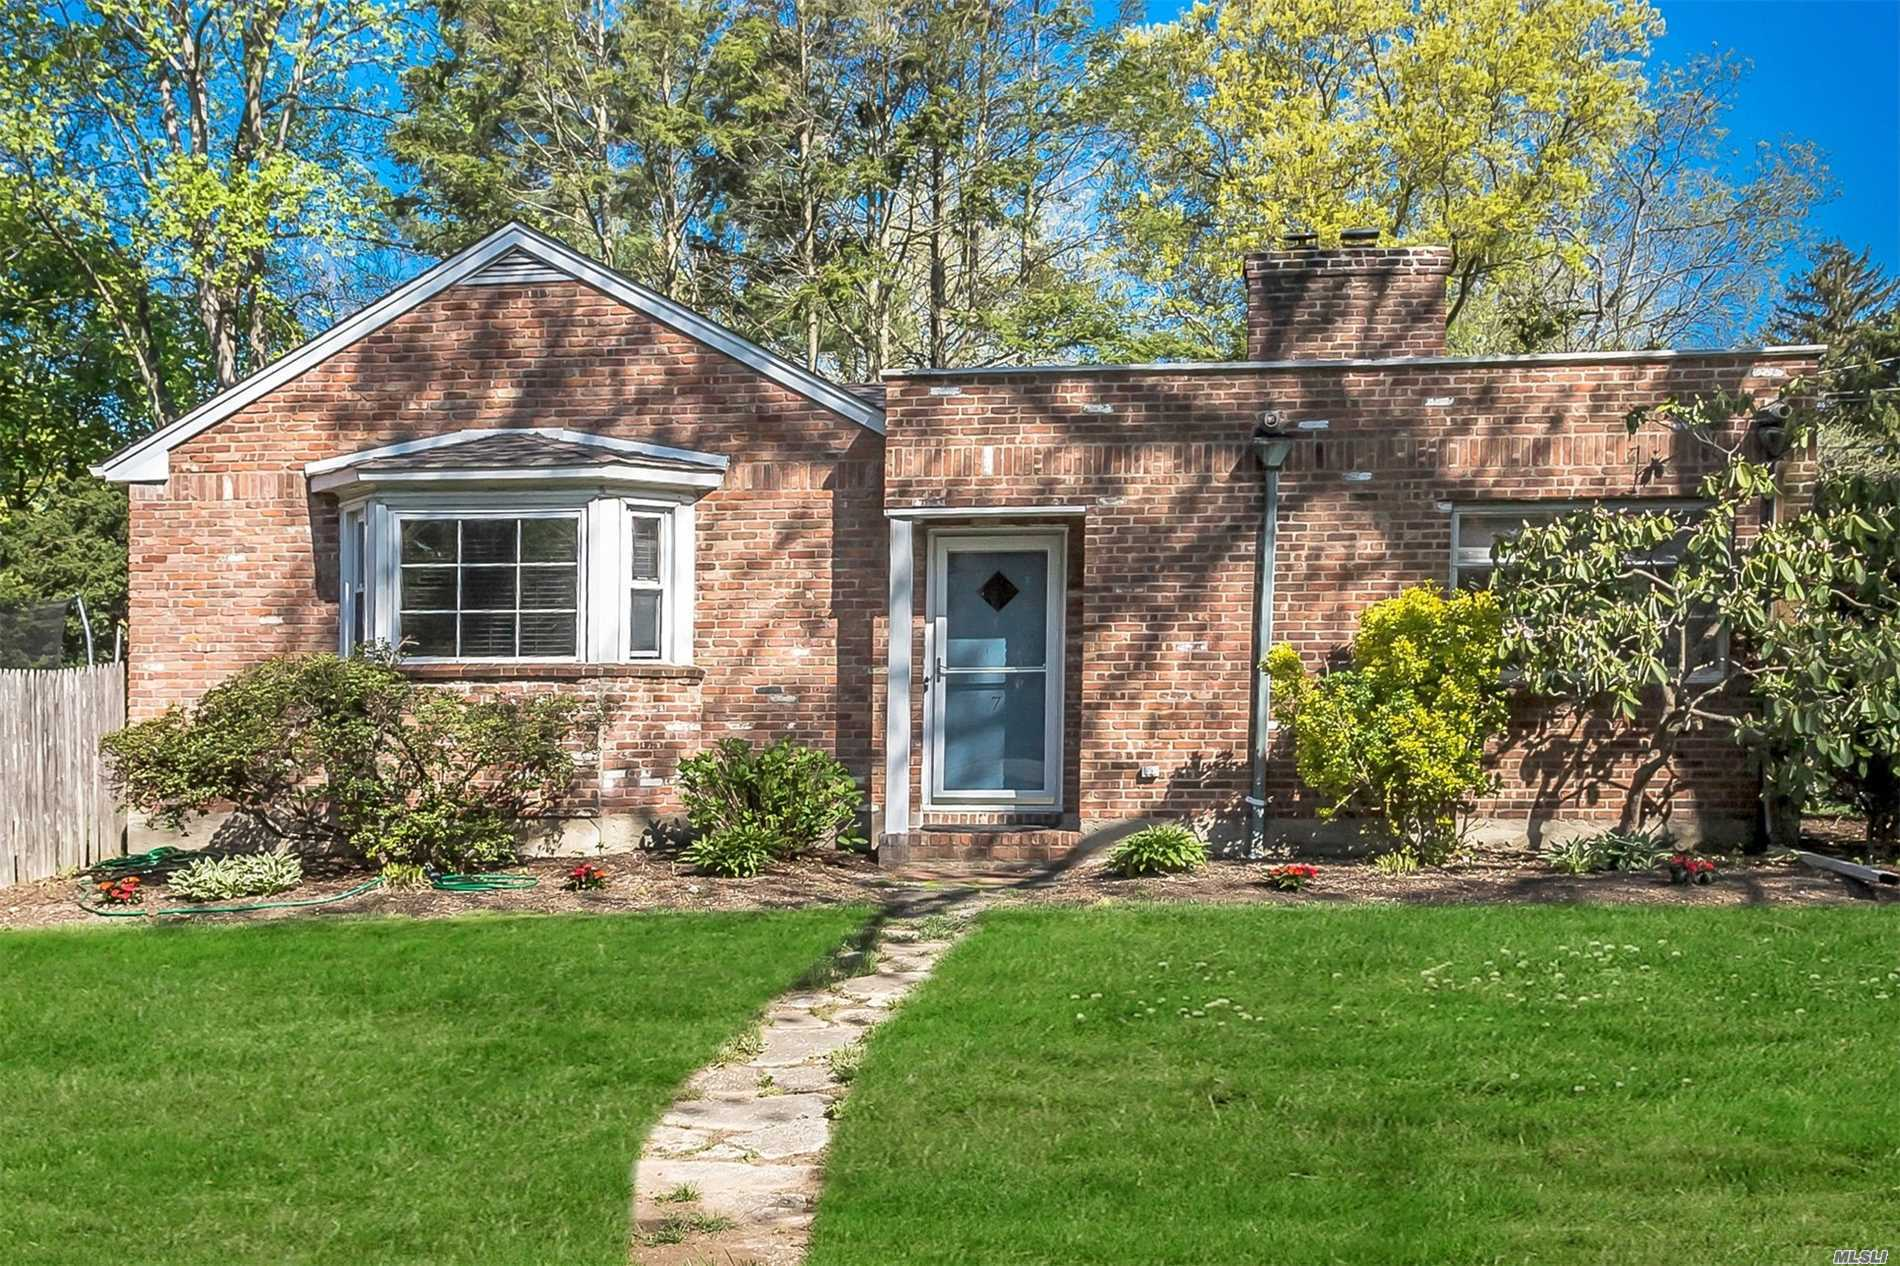 7 Fairfields Ln - Huntington Sta, New York